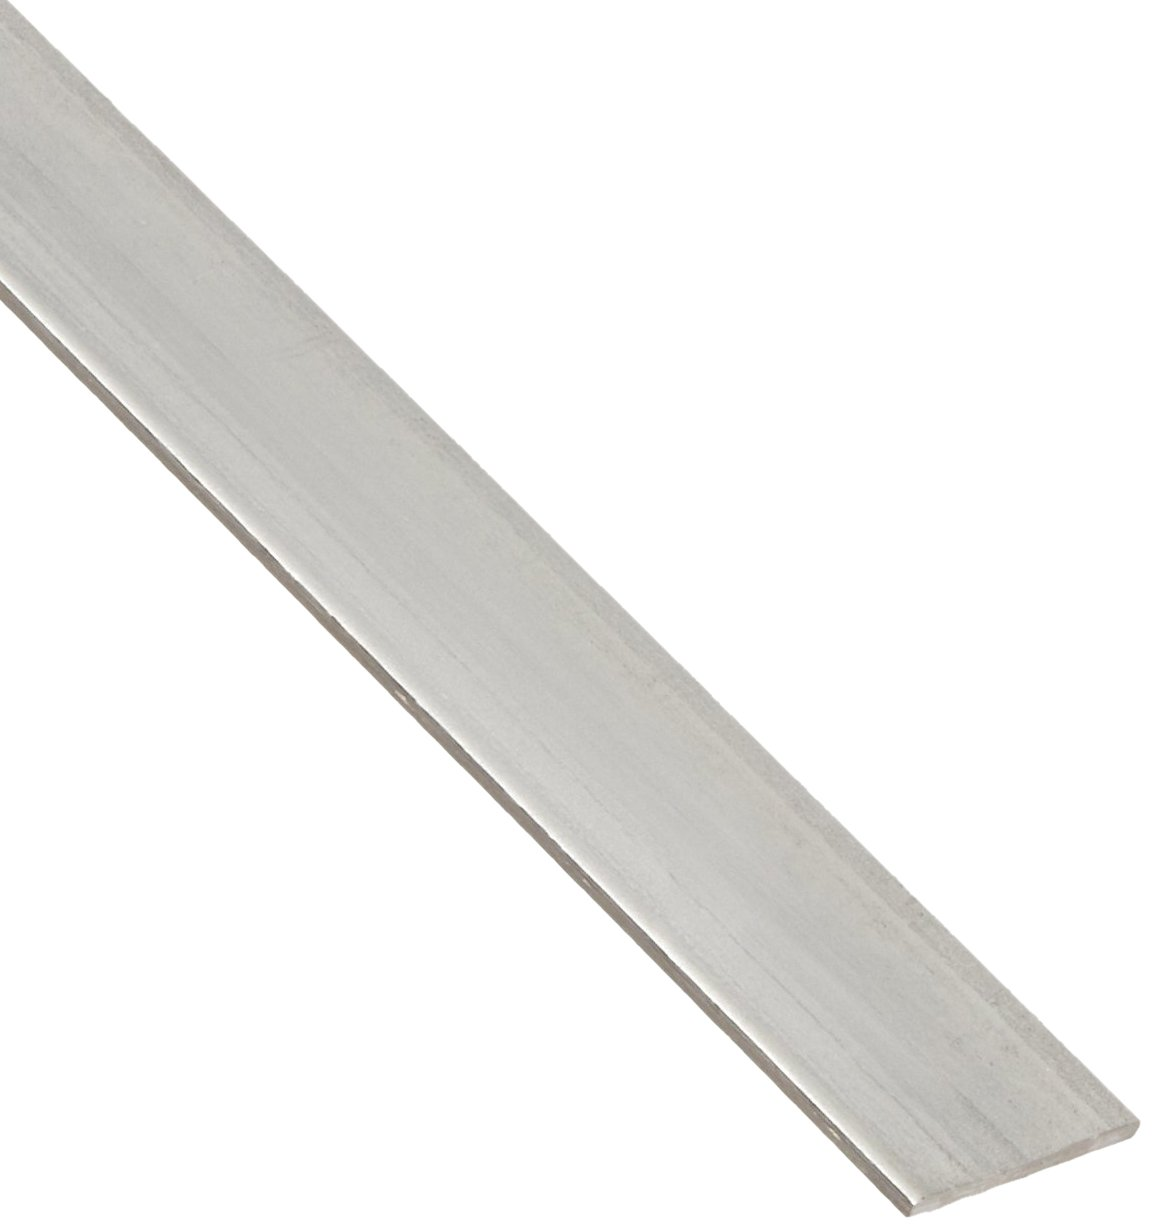 Annealed 24 Length 1//8 Thickness Mill 304 Stainless Steel Rectangular Bar 1//2 Width Temper ASTM A276 Finish Annealed Unpolished